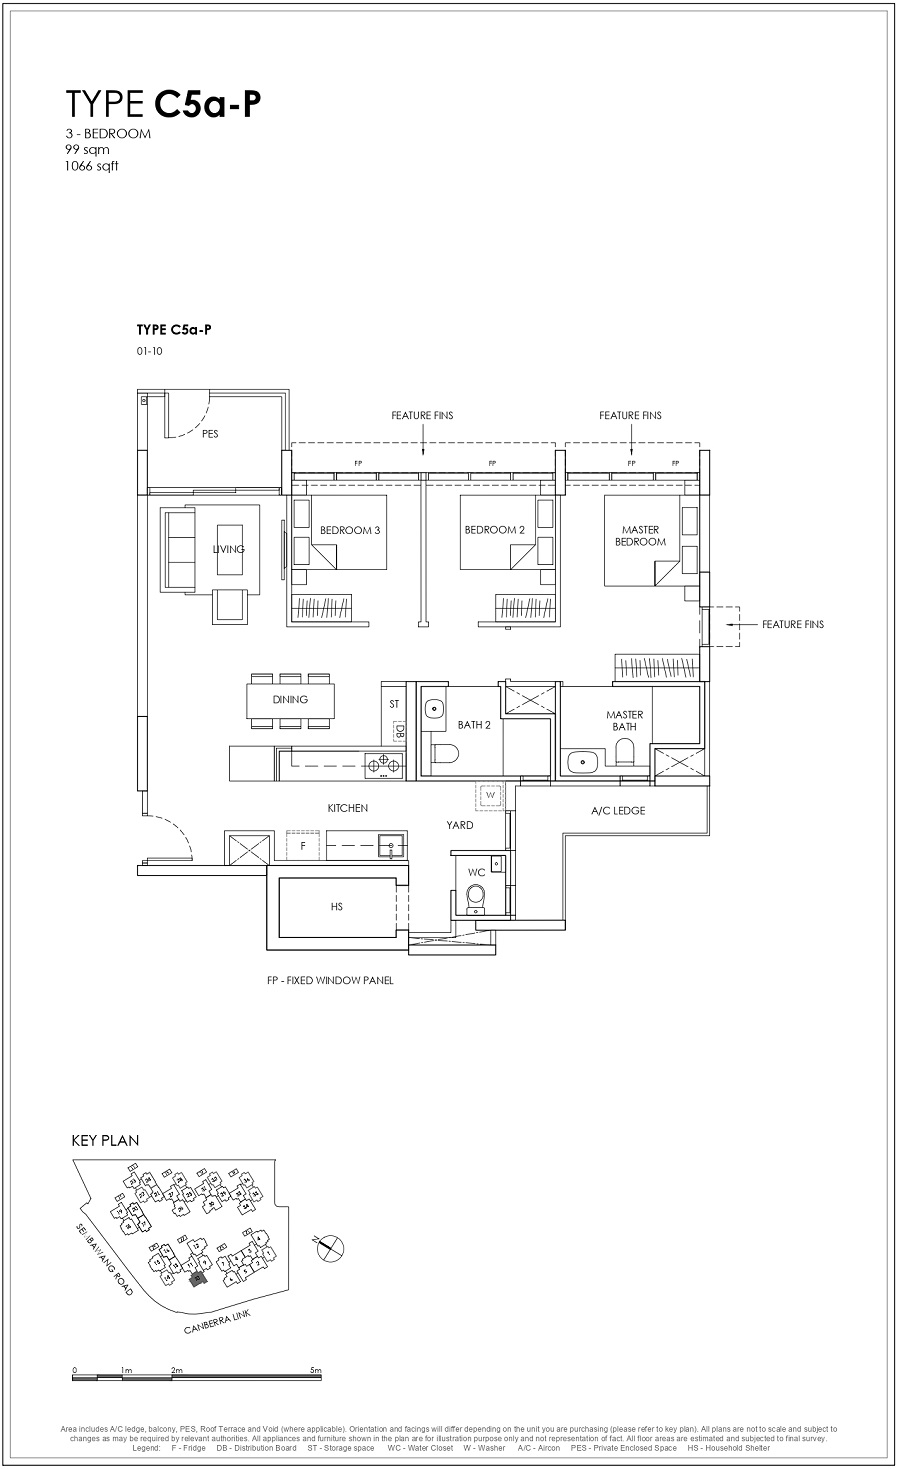 Provence Residence EC 3BR Type C5a-P 99_1066